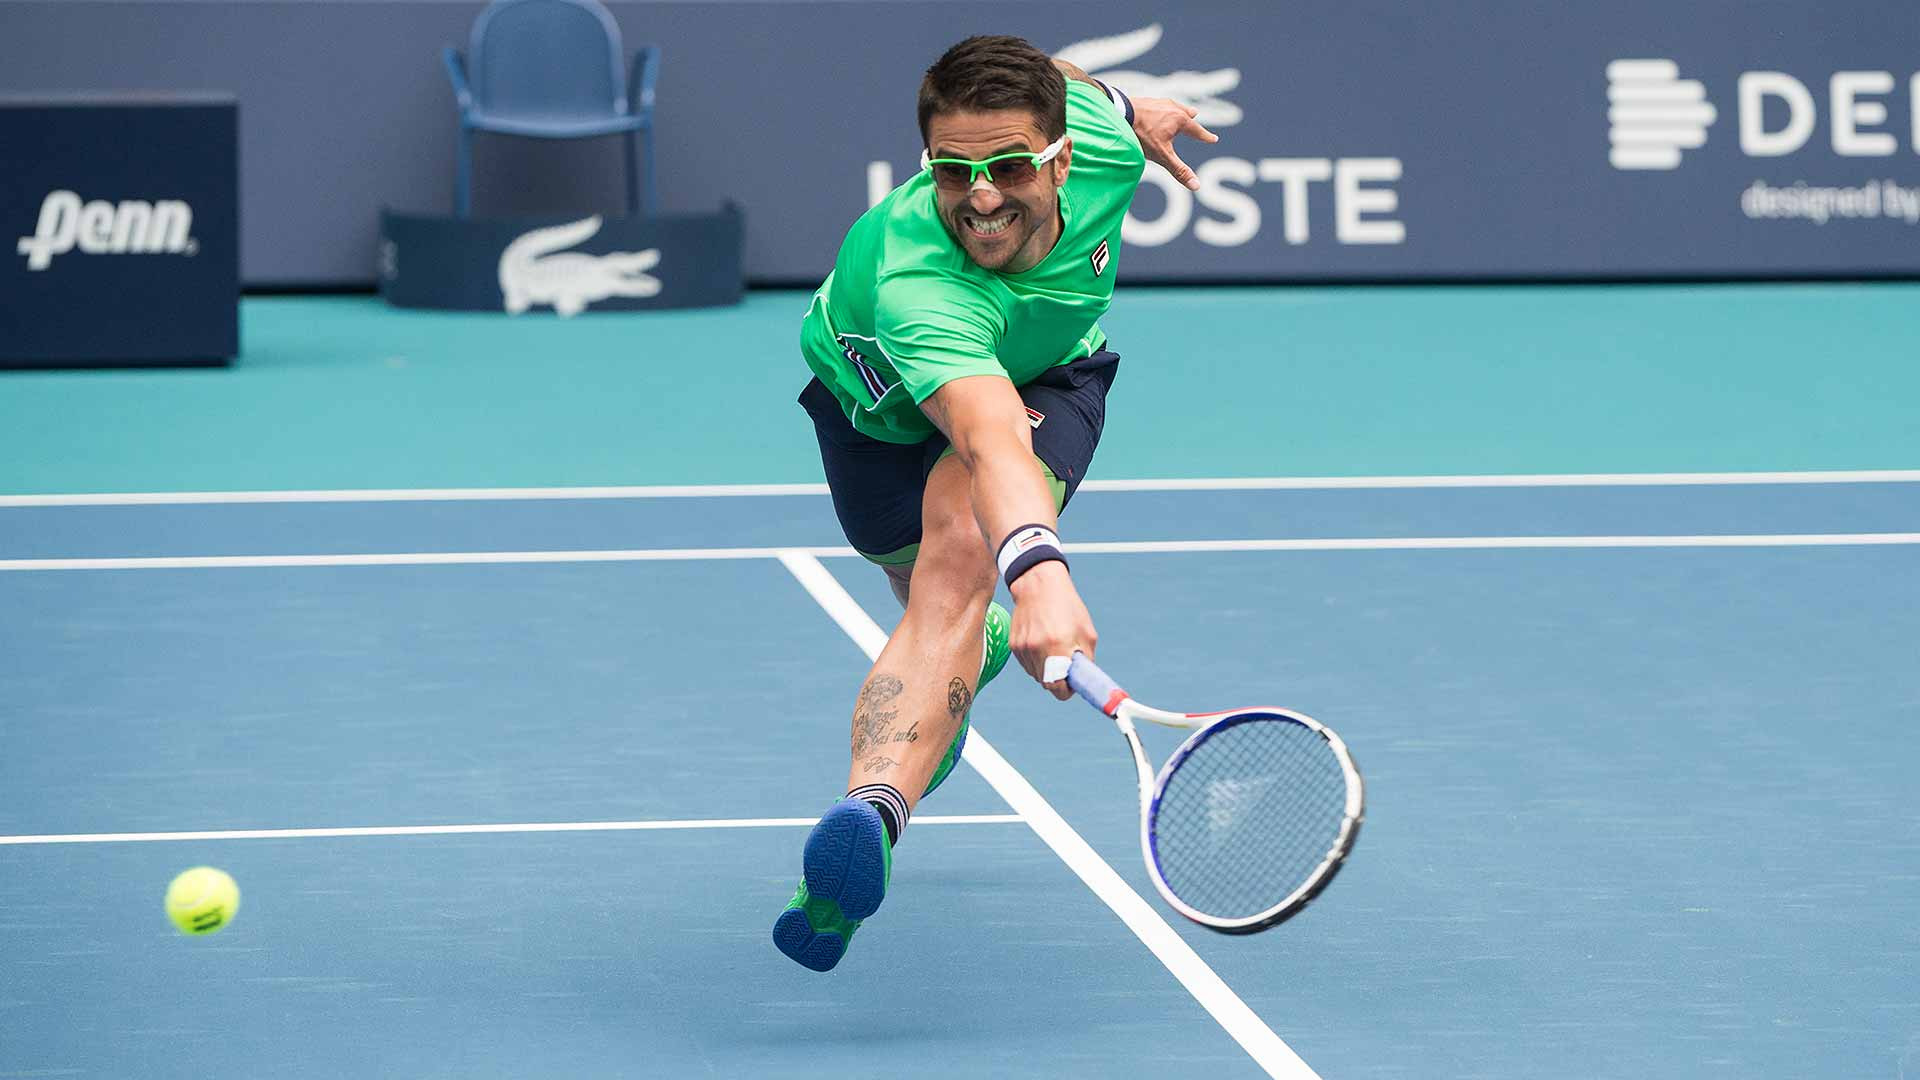 <a href='https://www.atptour.com/en/players/janko-tipsarevic/t742/overview'>Janko Tipsarevic</a> is on the comeback trail again